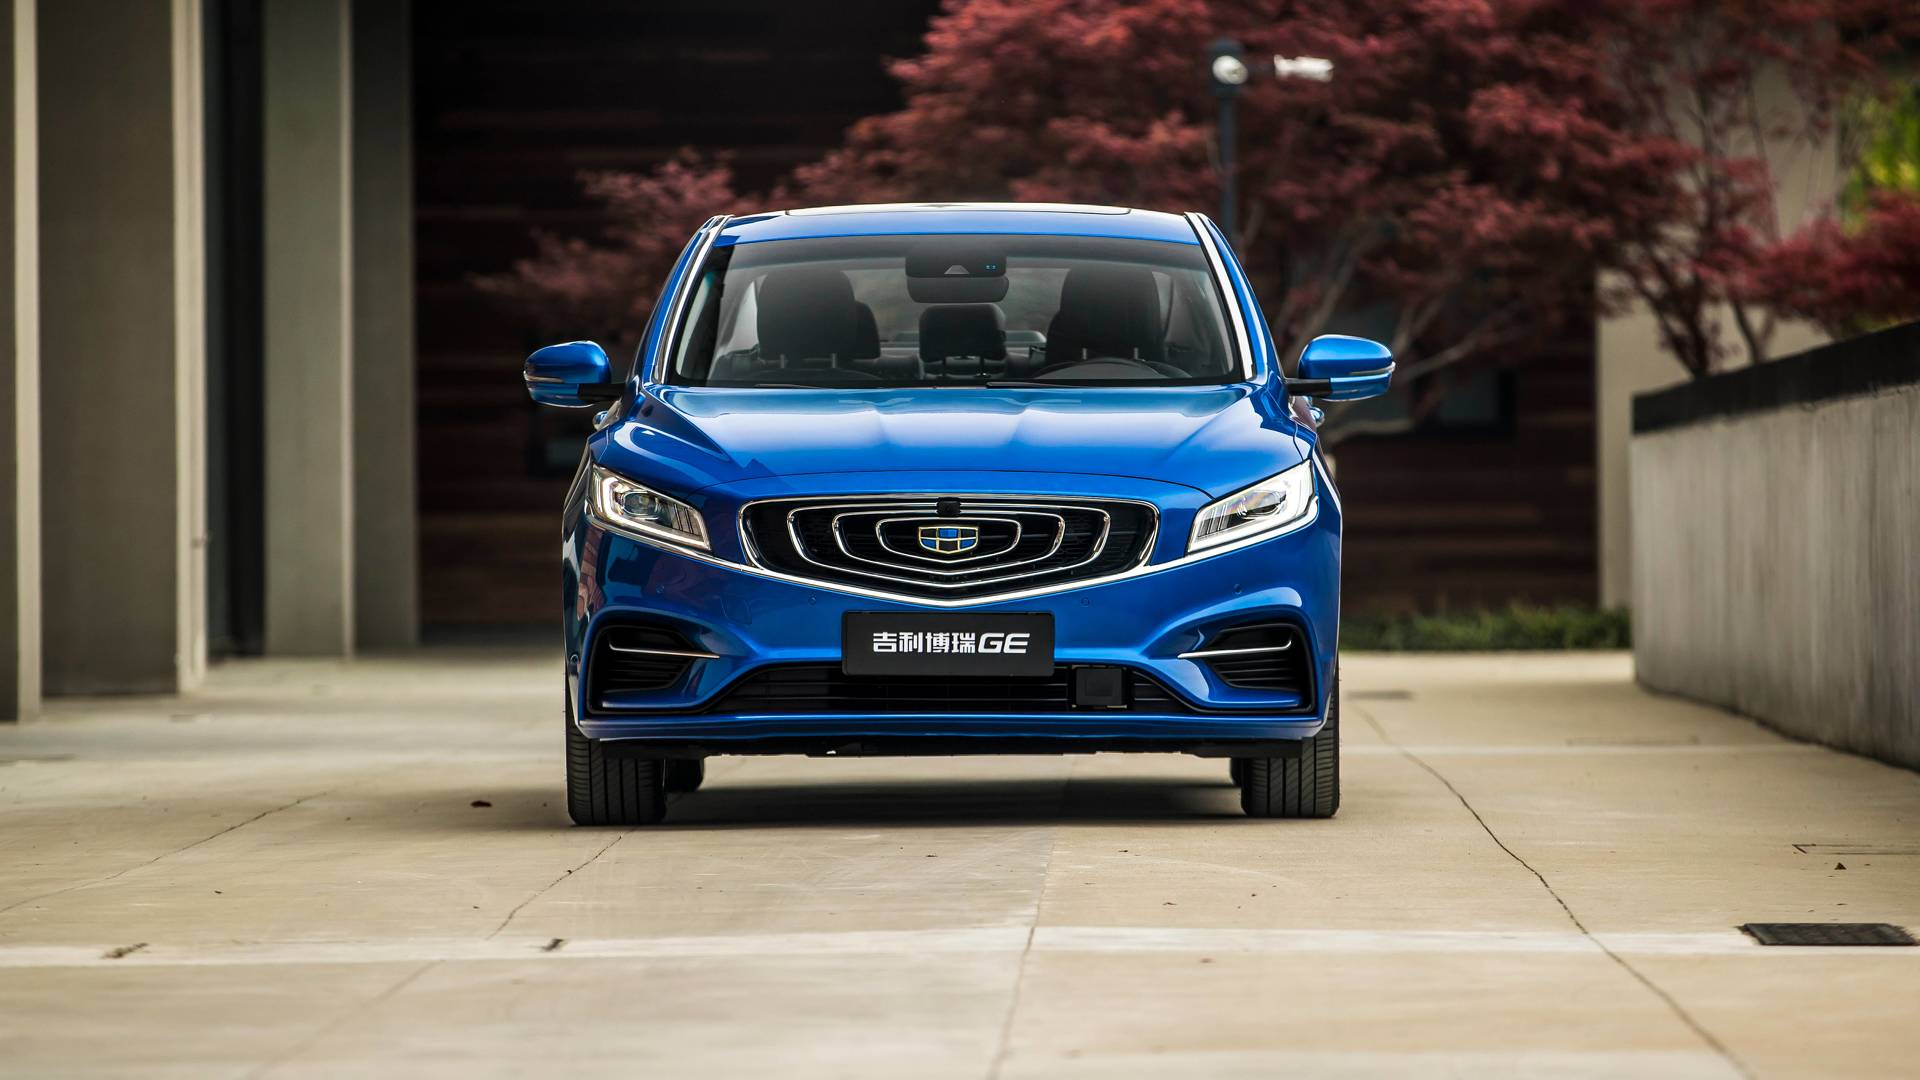 Geely S New Flagship Saloon Shows Global Intent